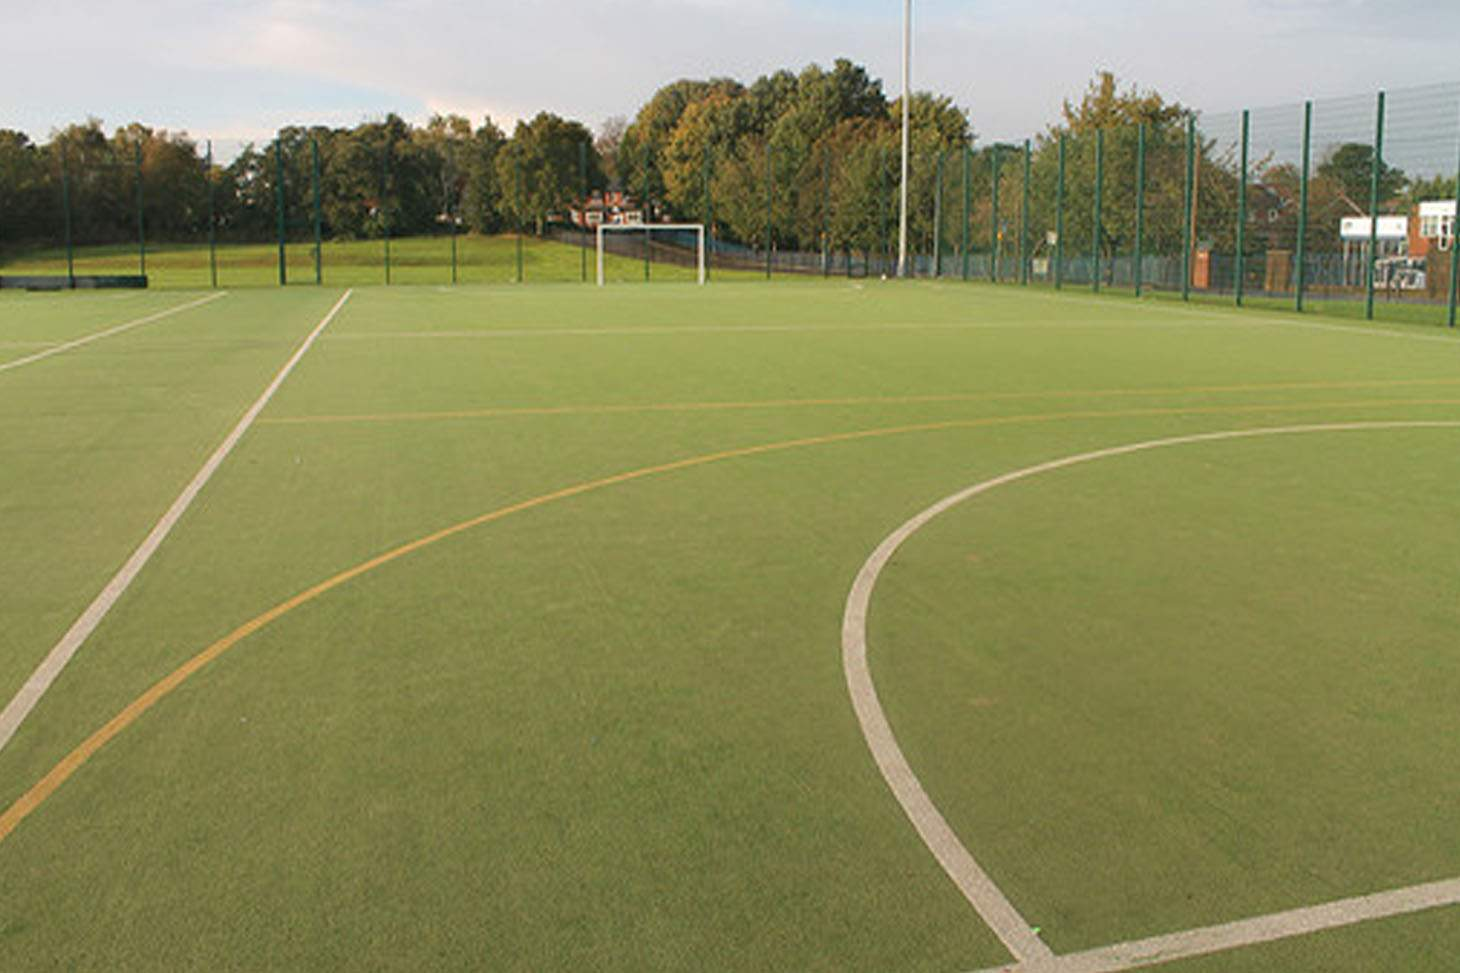 St. James's C of E High School 7 a side | Astroturf football pitch